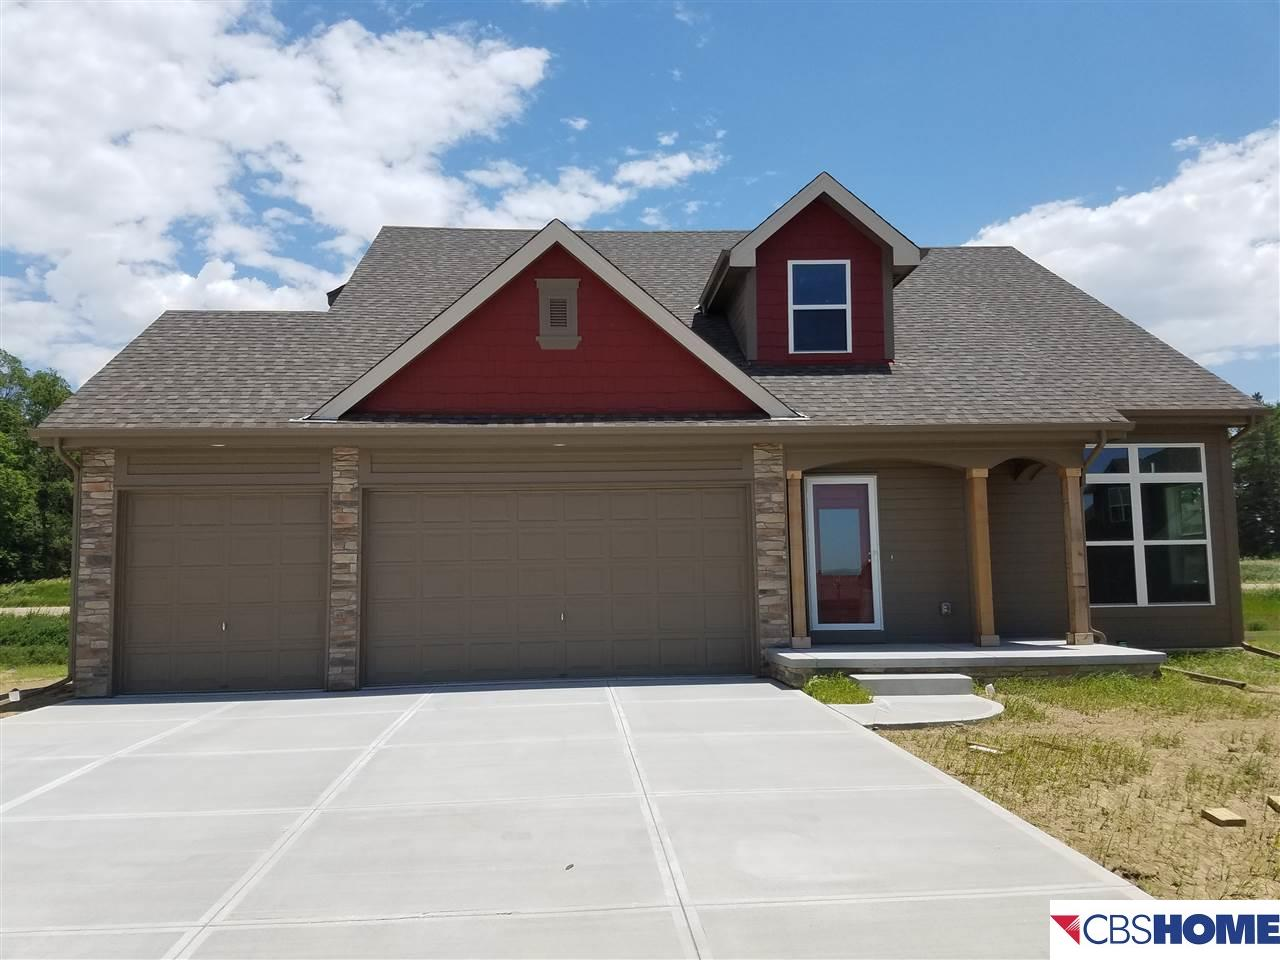 134 Broken Arrow Cir, Yutan, NE 68073